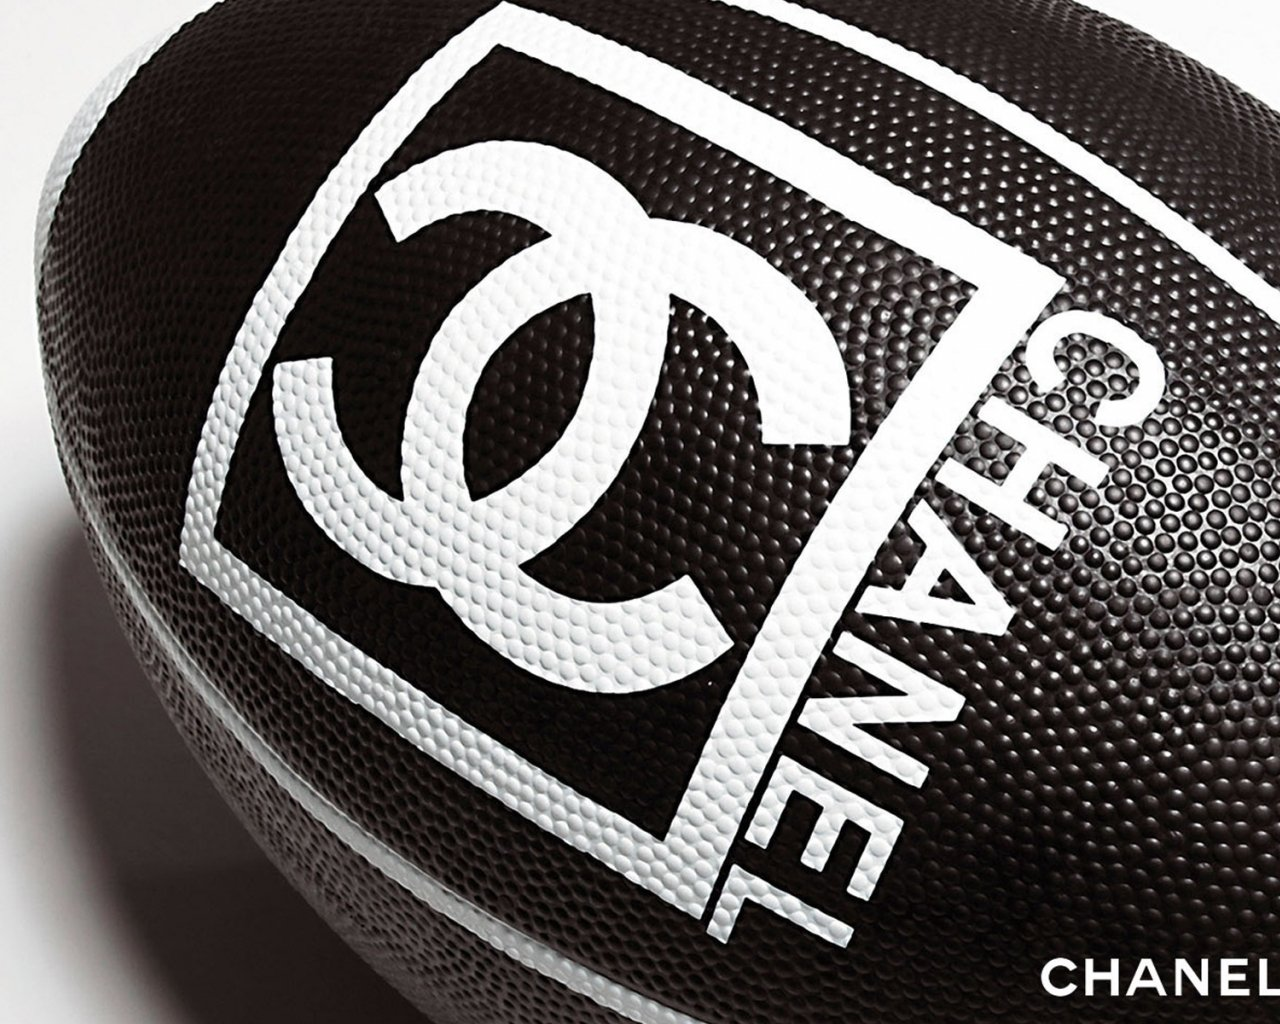 Download Wallpaper chanel ball rugby HD Background 1280x1024